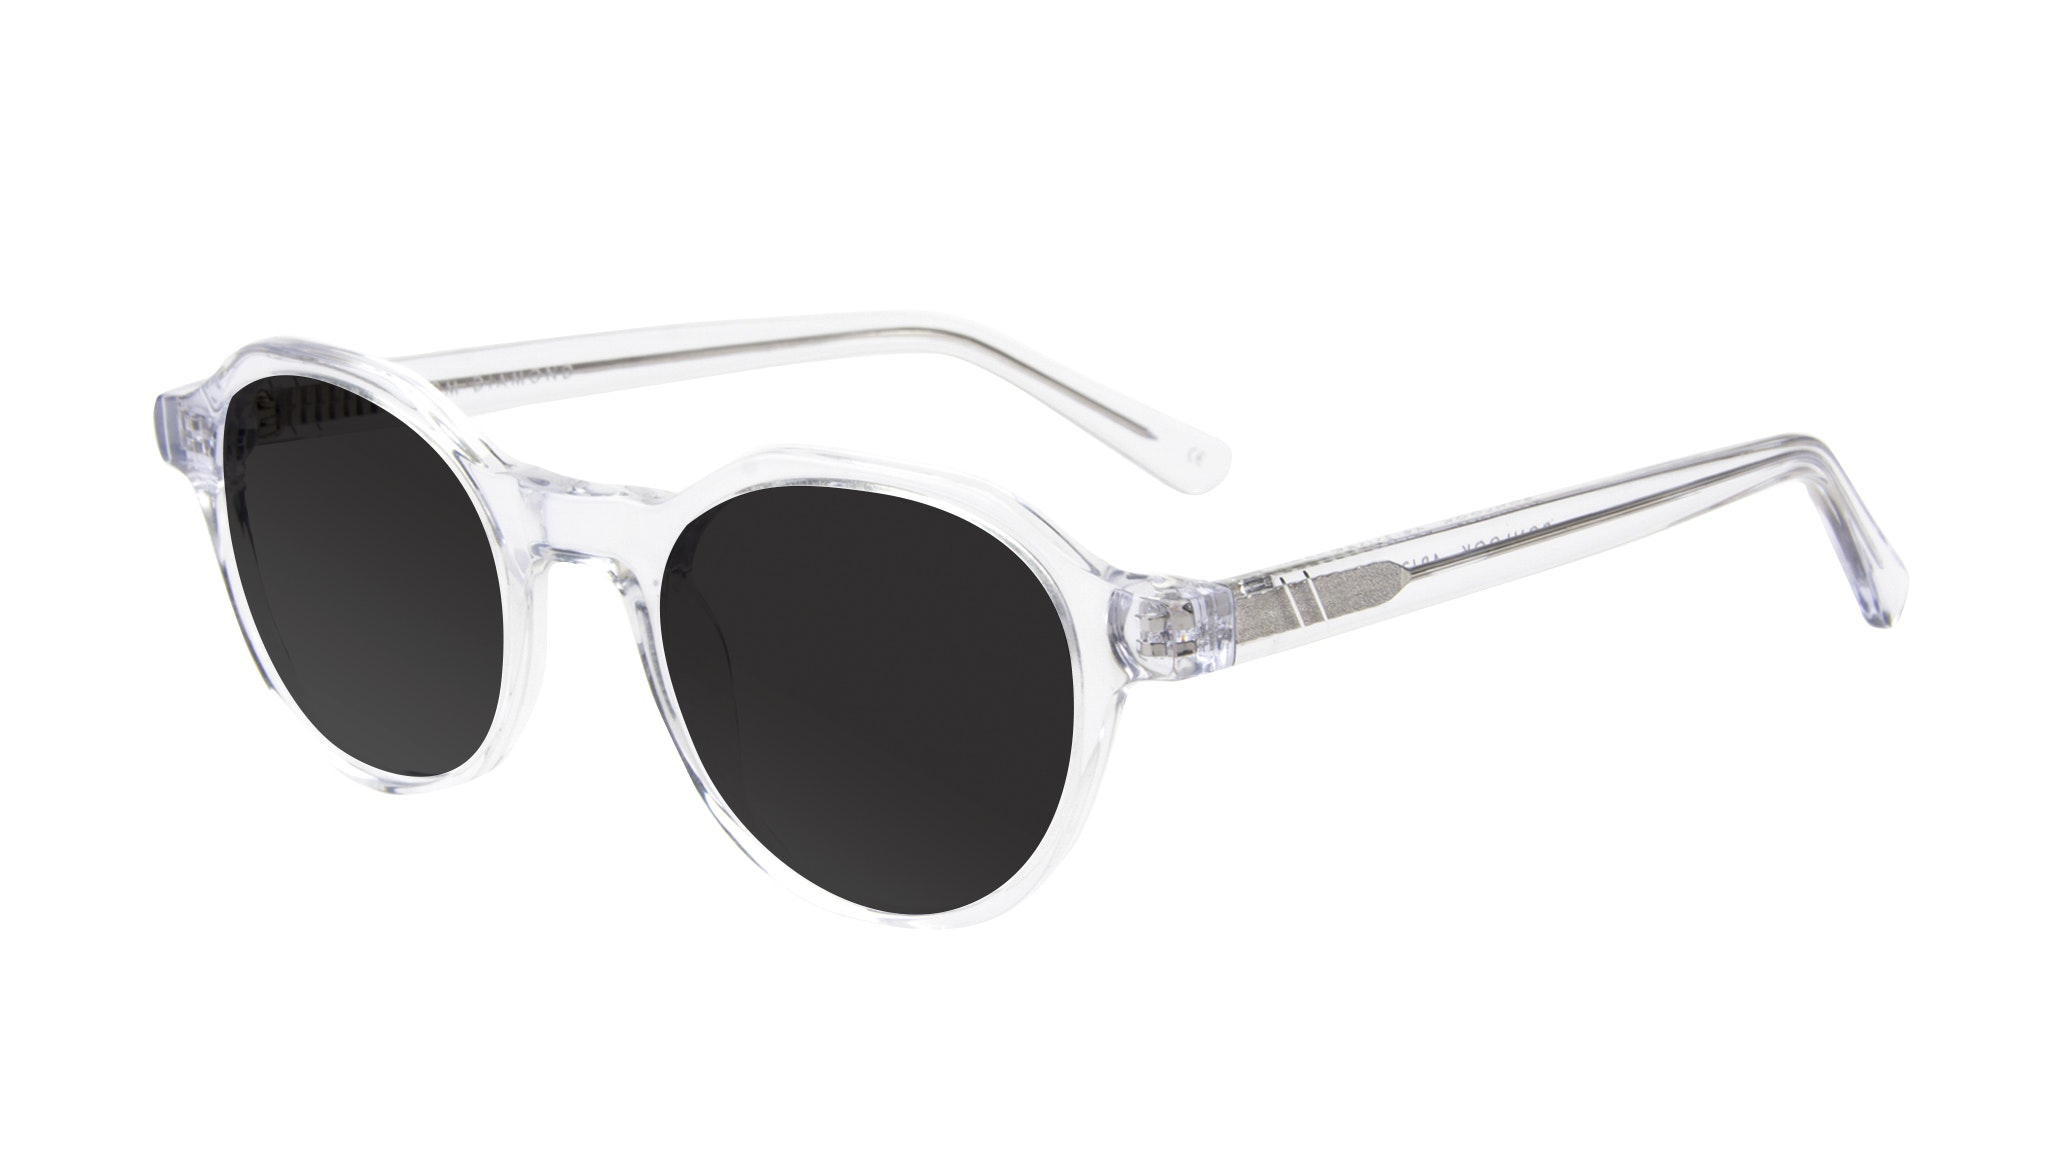 Affordable Fashion Glasses Round Sunglasses Men Form Diamond Tilt